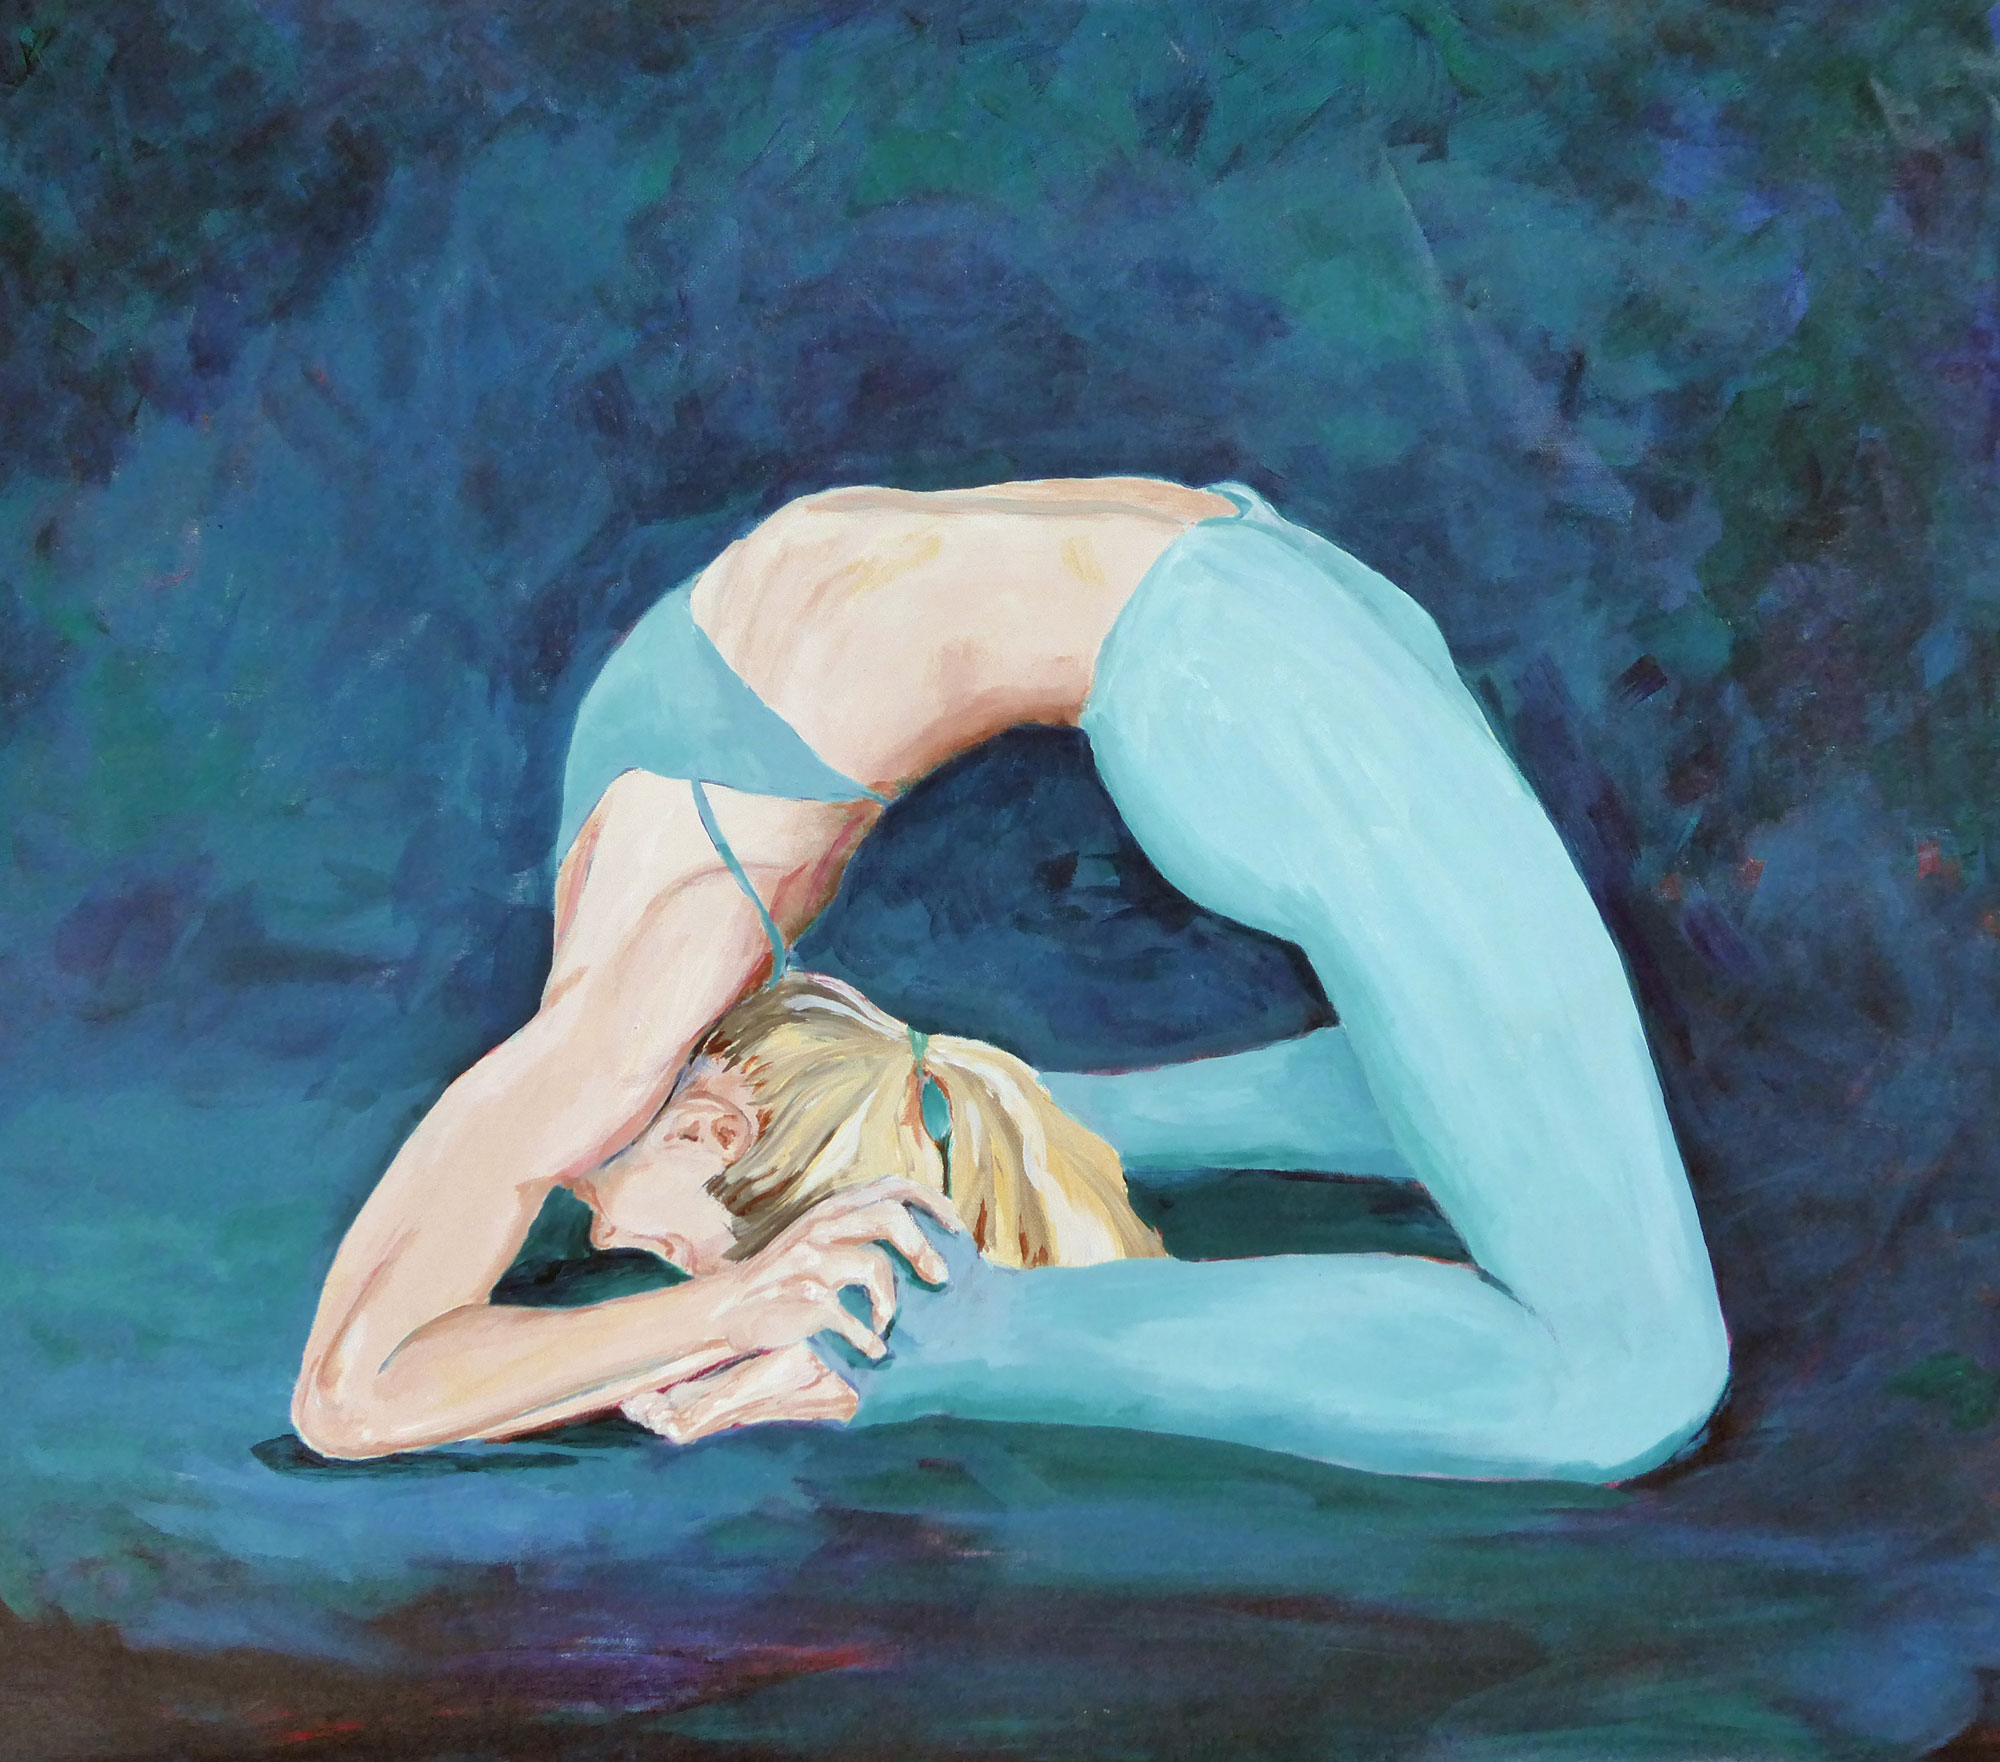 "The Yoga Portraits are hand painted original portrait on artist canvas. Great care is taken not only to capture likeness but also to express the light within every painting subject. This image, SG Kapotasana, is 29"" W x 25"" H and is available for sale.  I welcome commissions to create unique, personalized artwork."